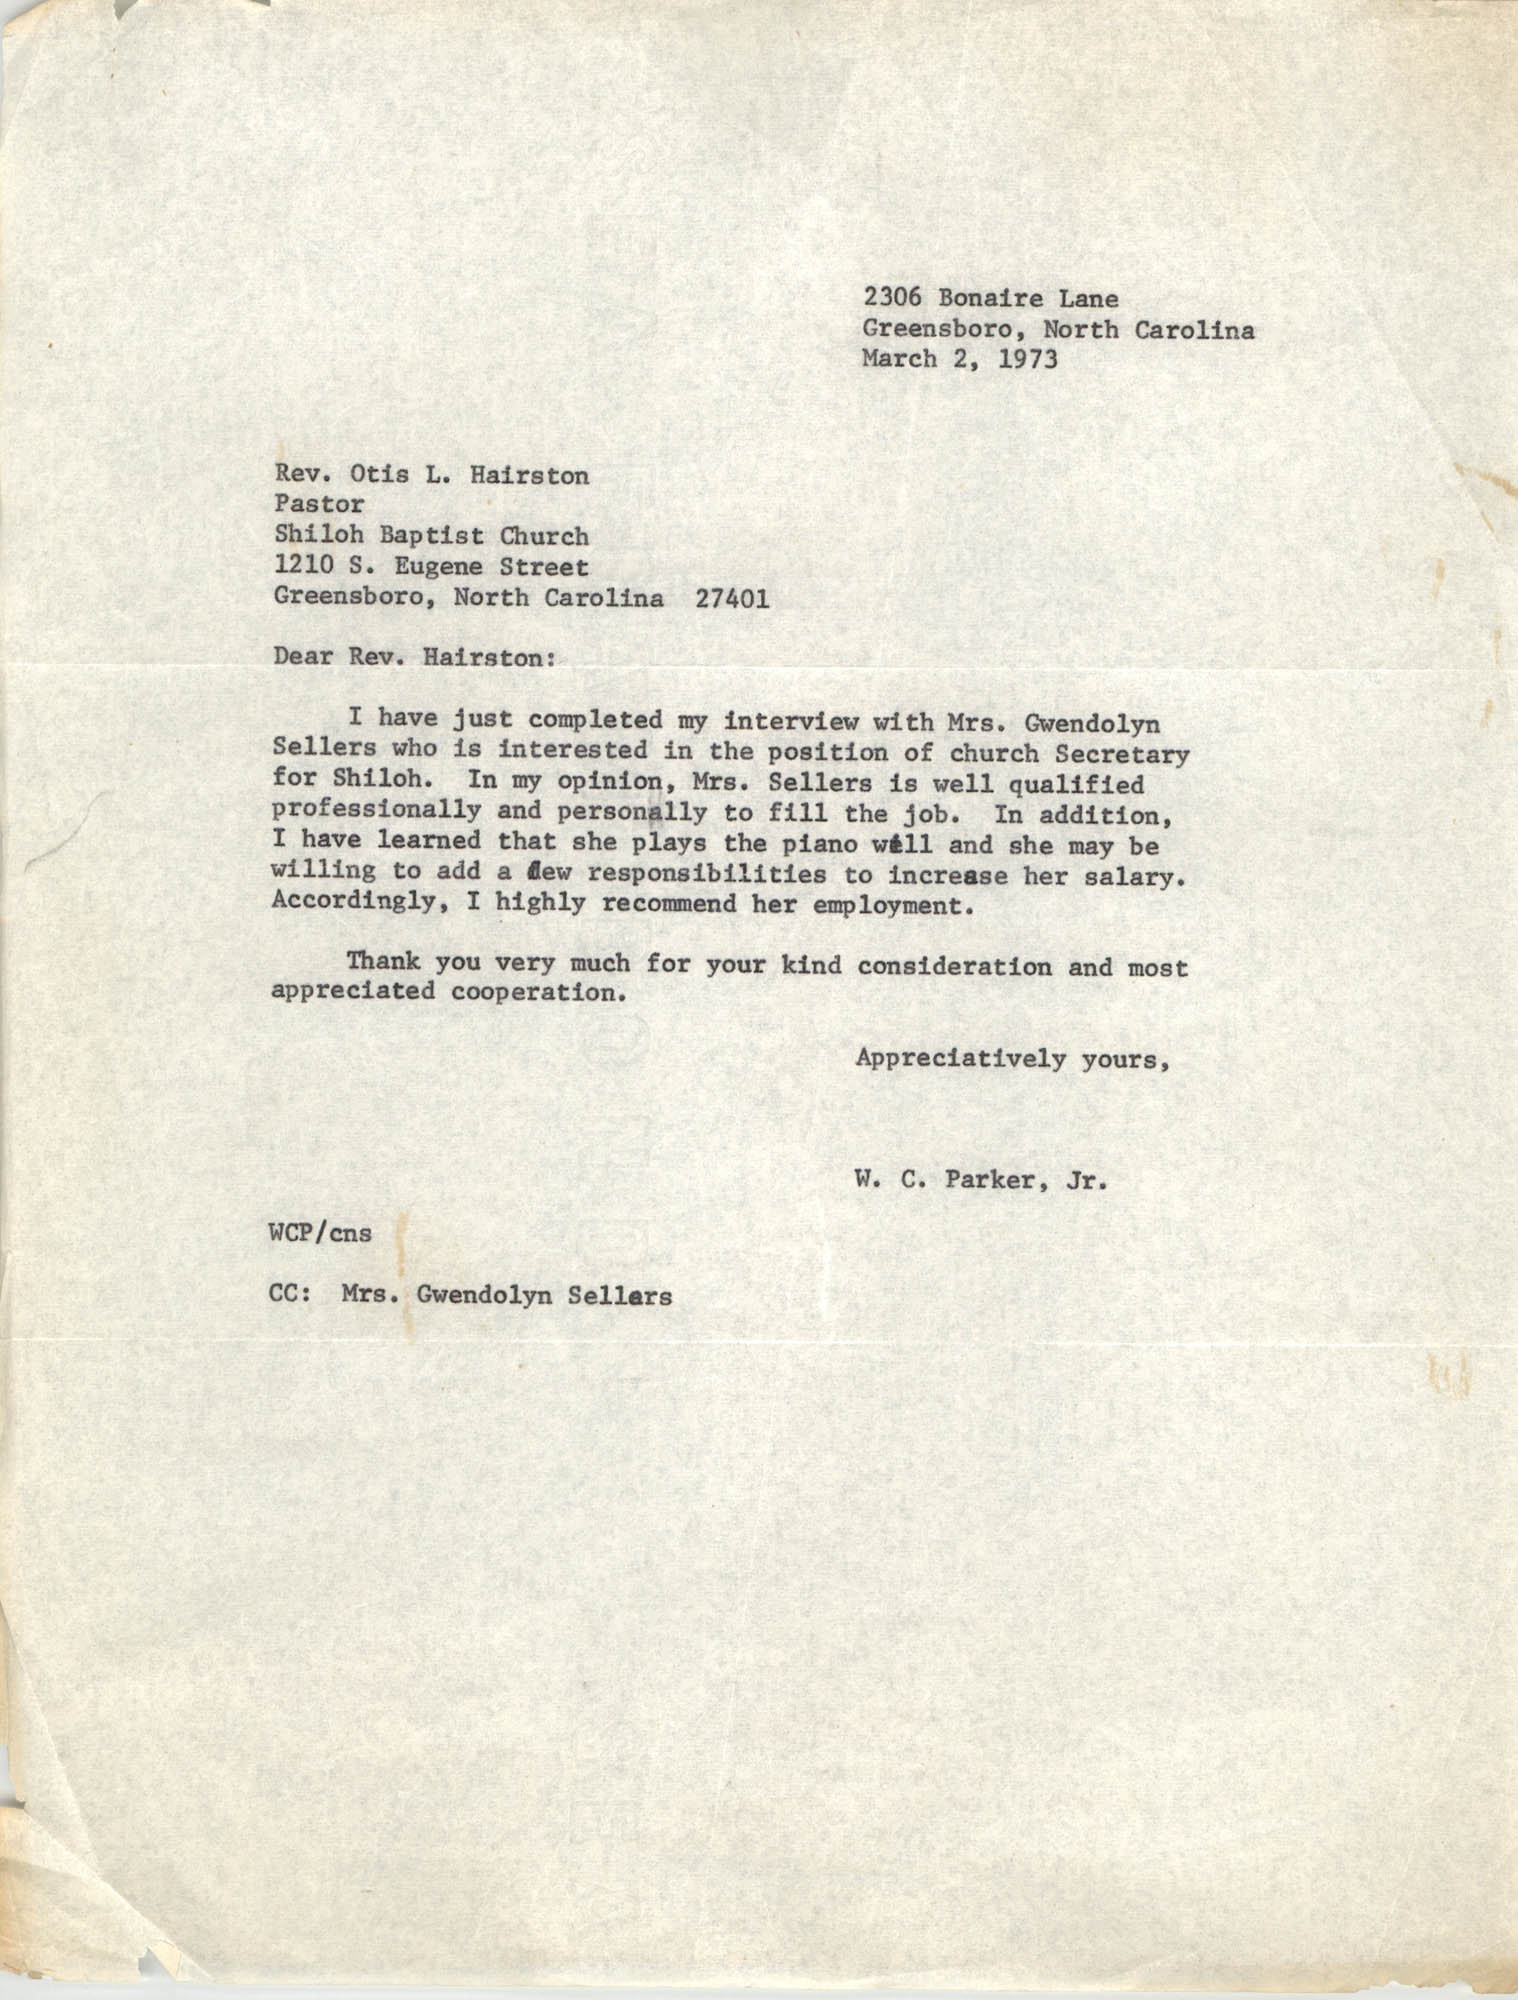 Letter from W. C. Parker, Jr. to Otis L. Hairston, March 2, 1973